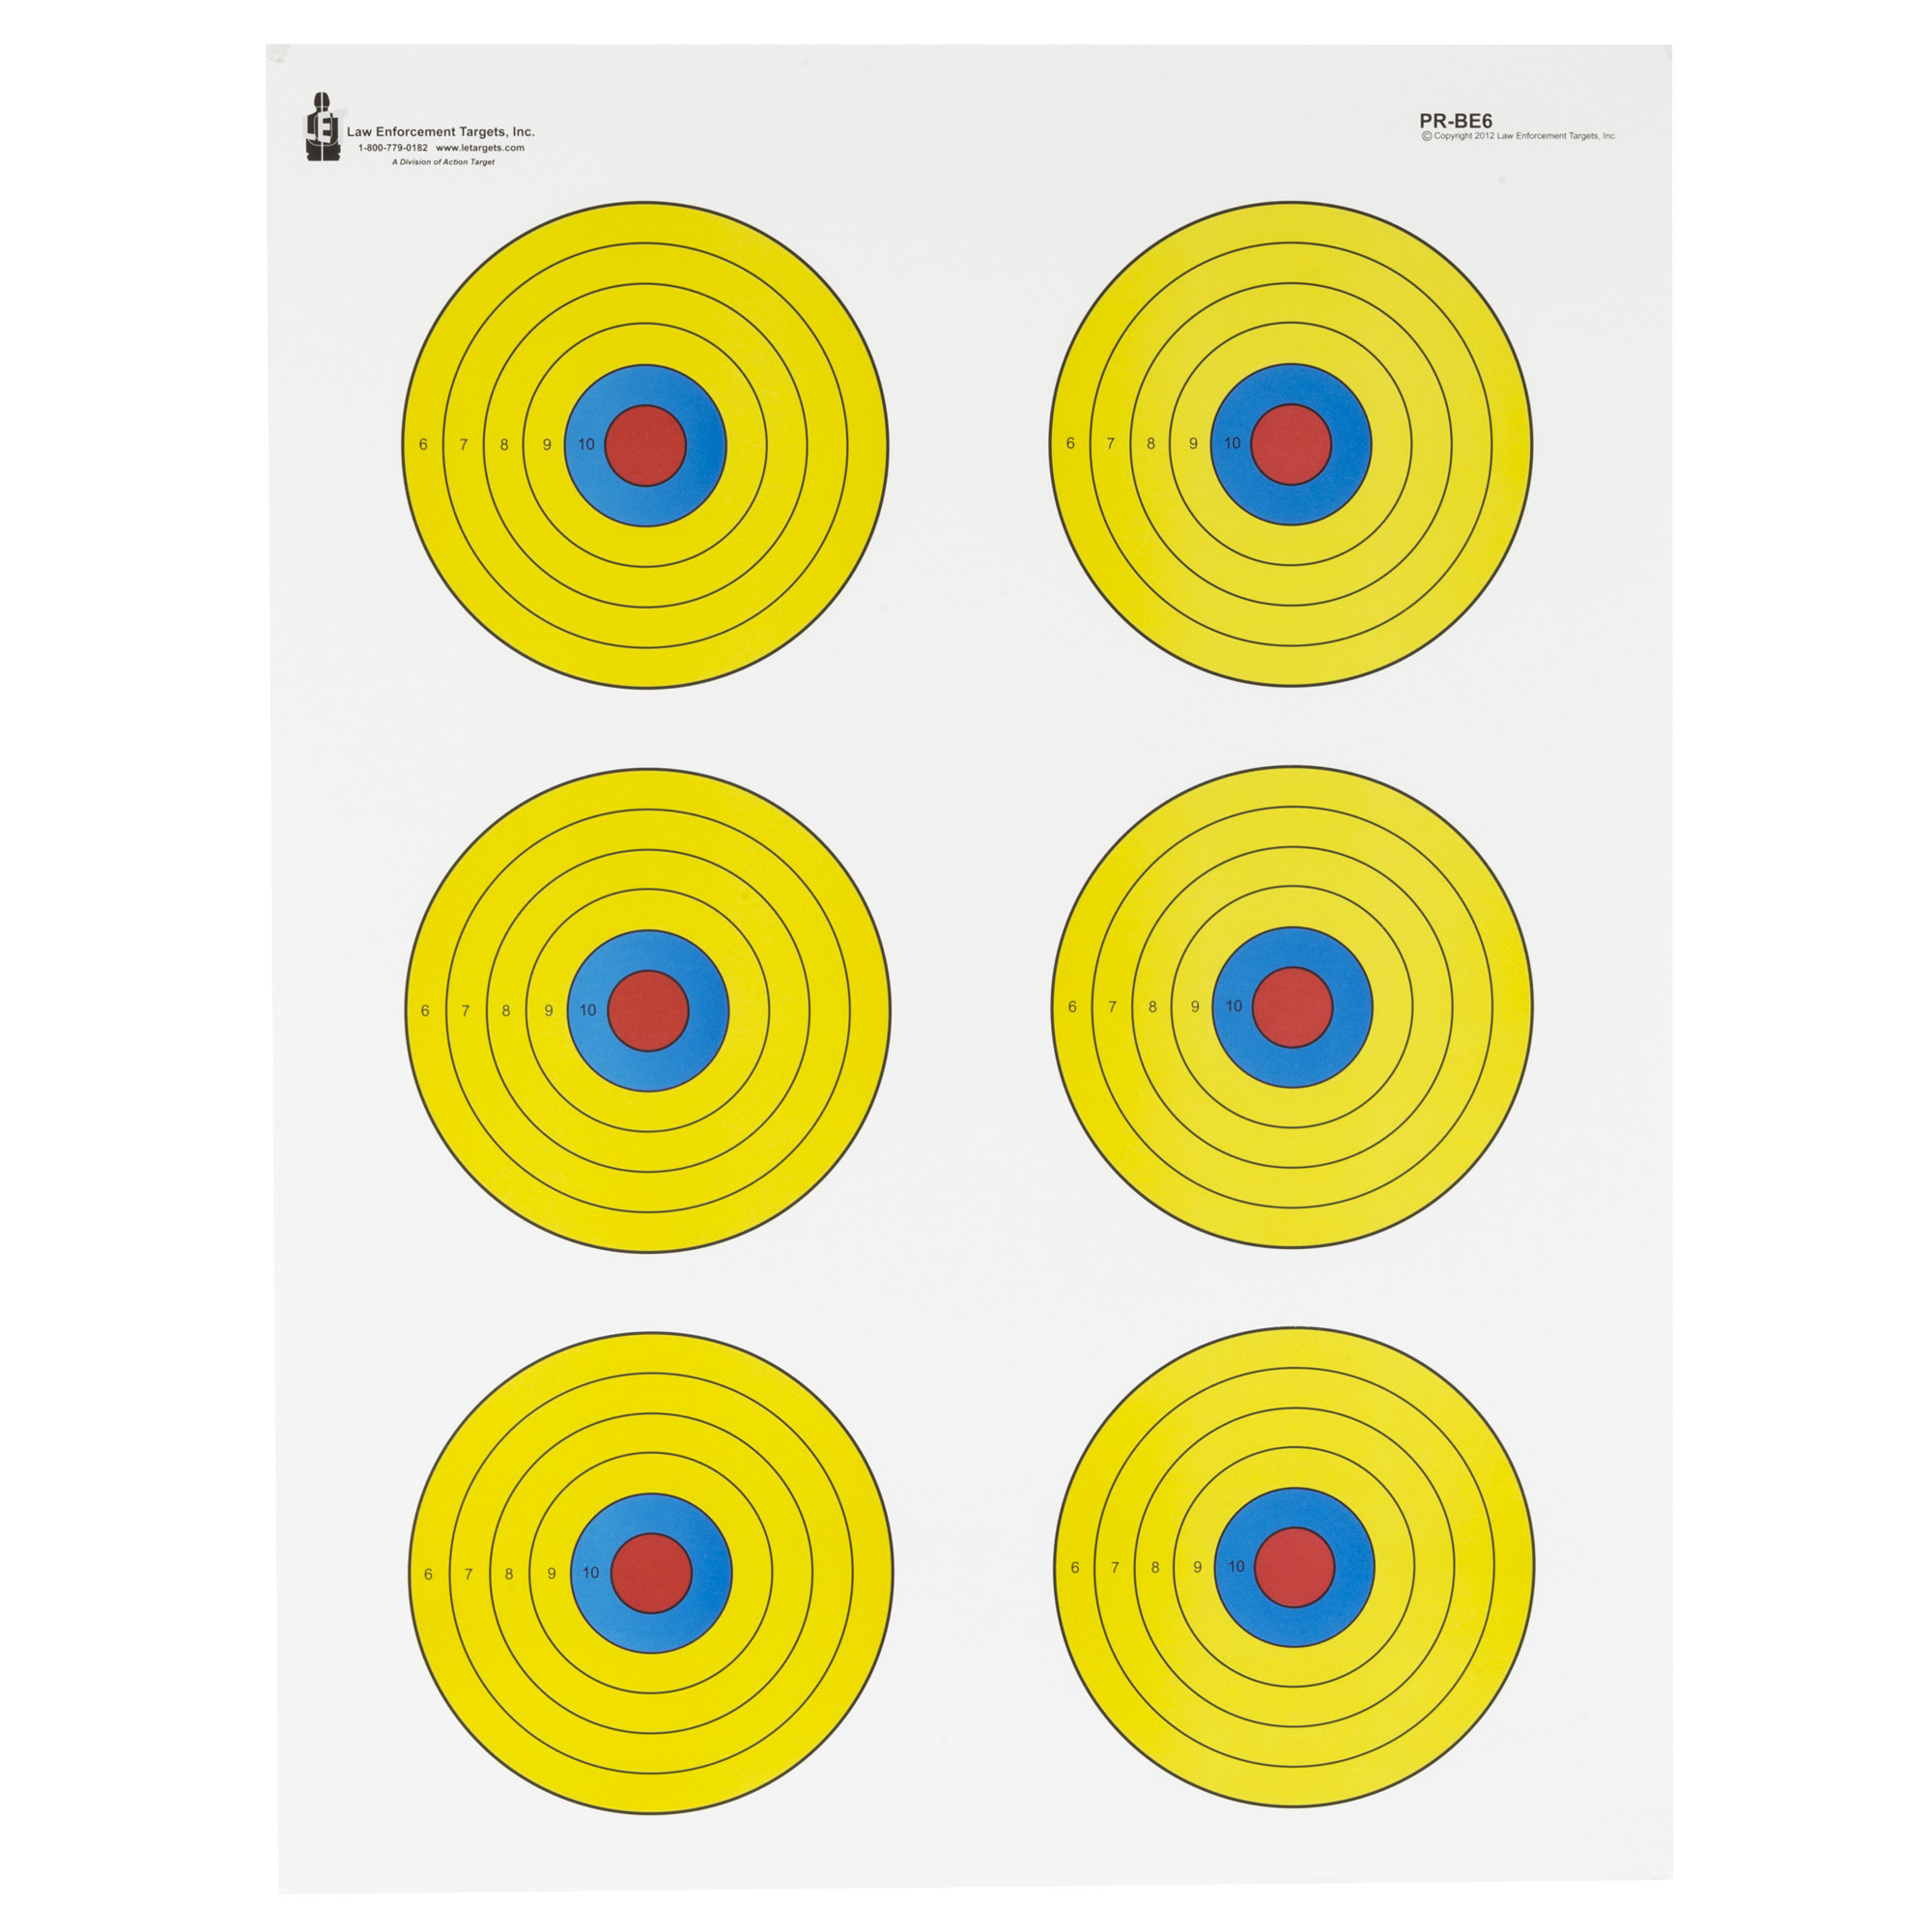 Action Tgt Bright 6 Bullseye 100pk